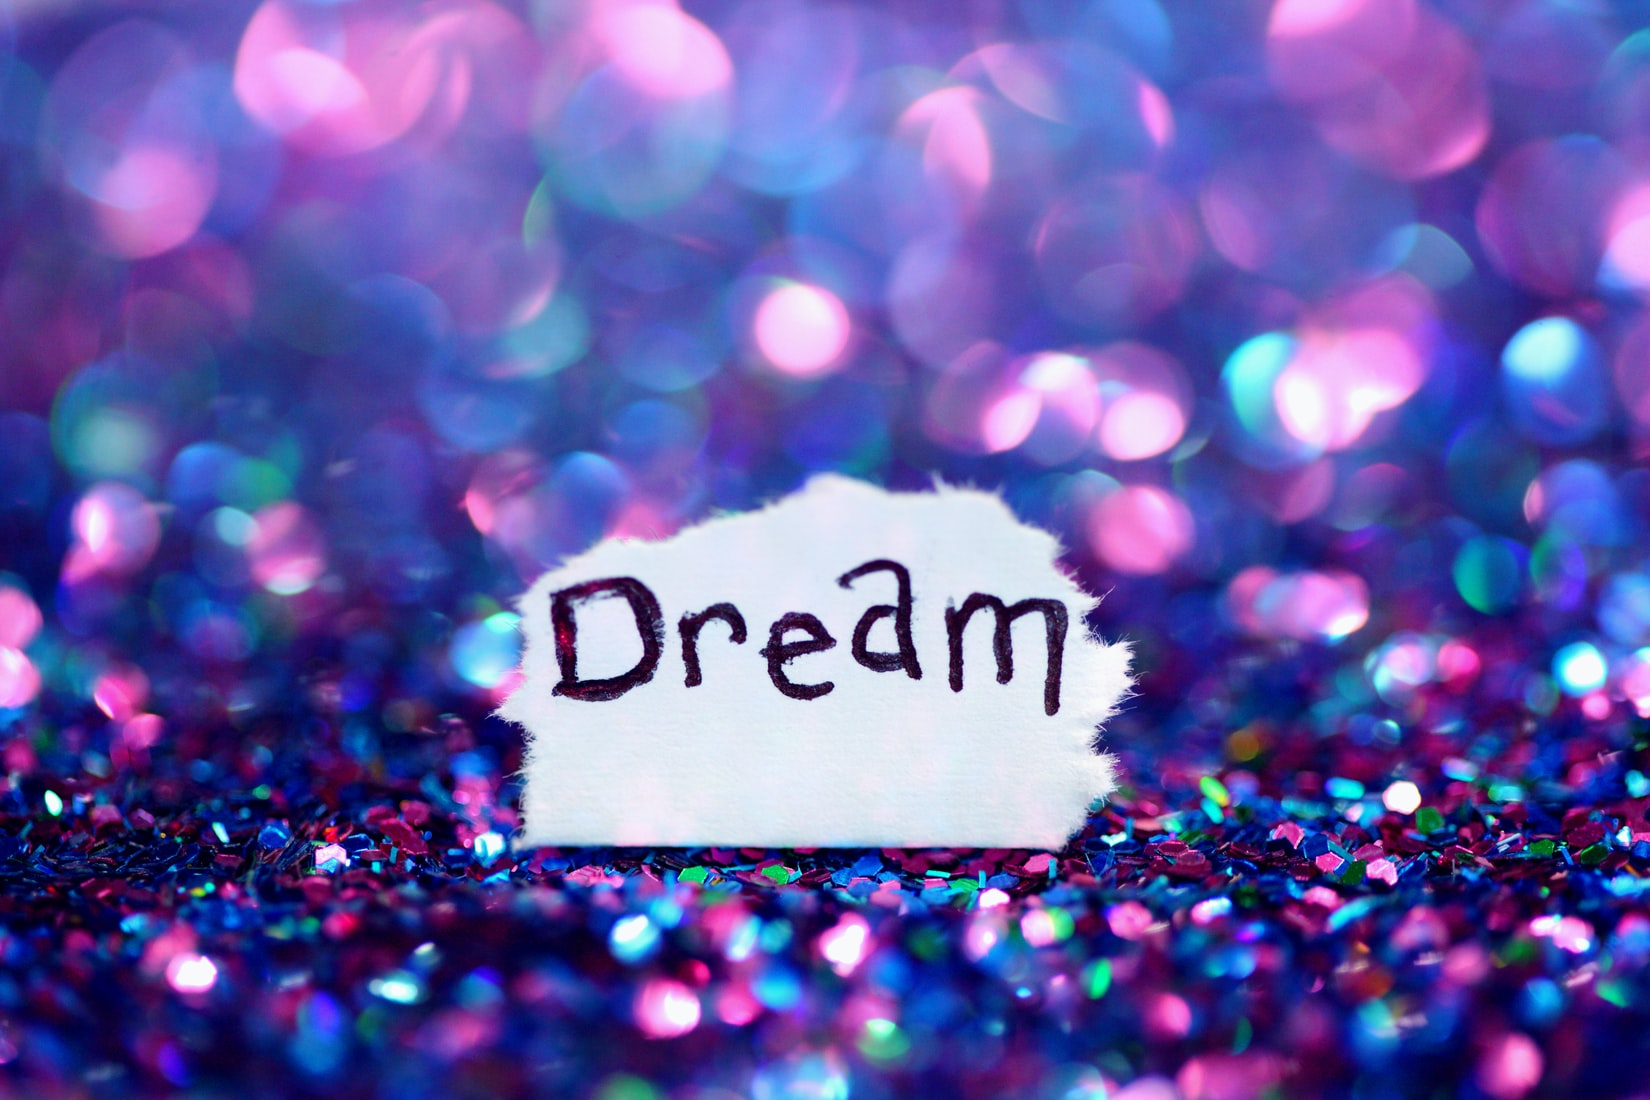 A simple message to dream with shimmery purple and pink glitter bokeh